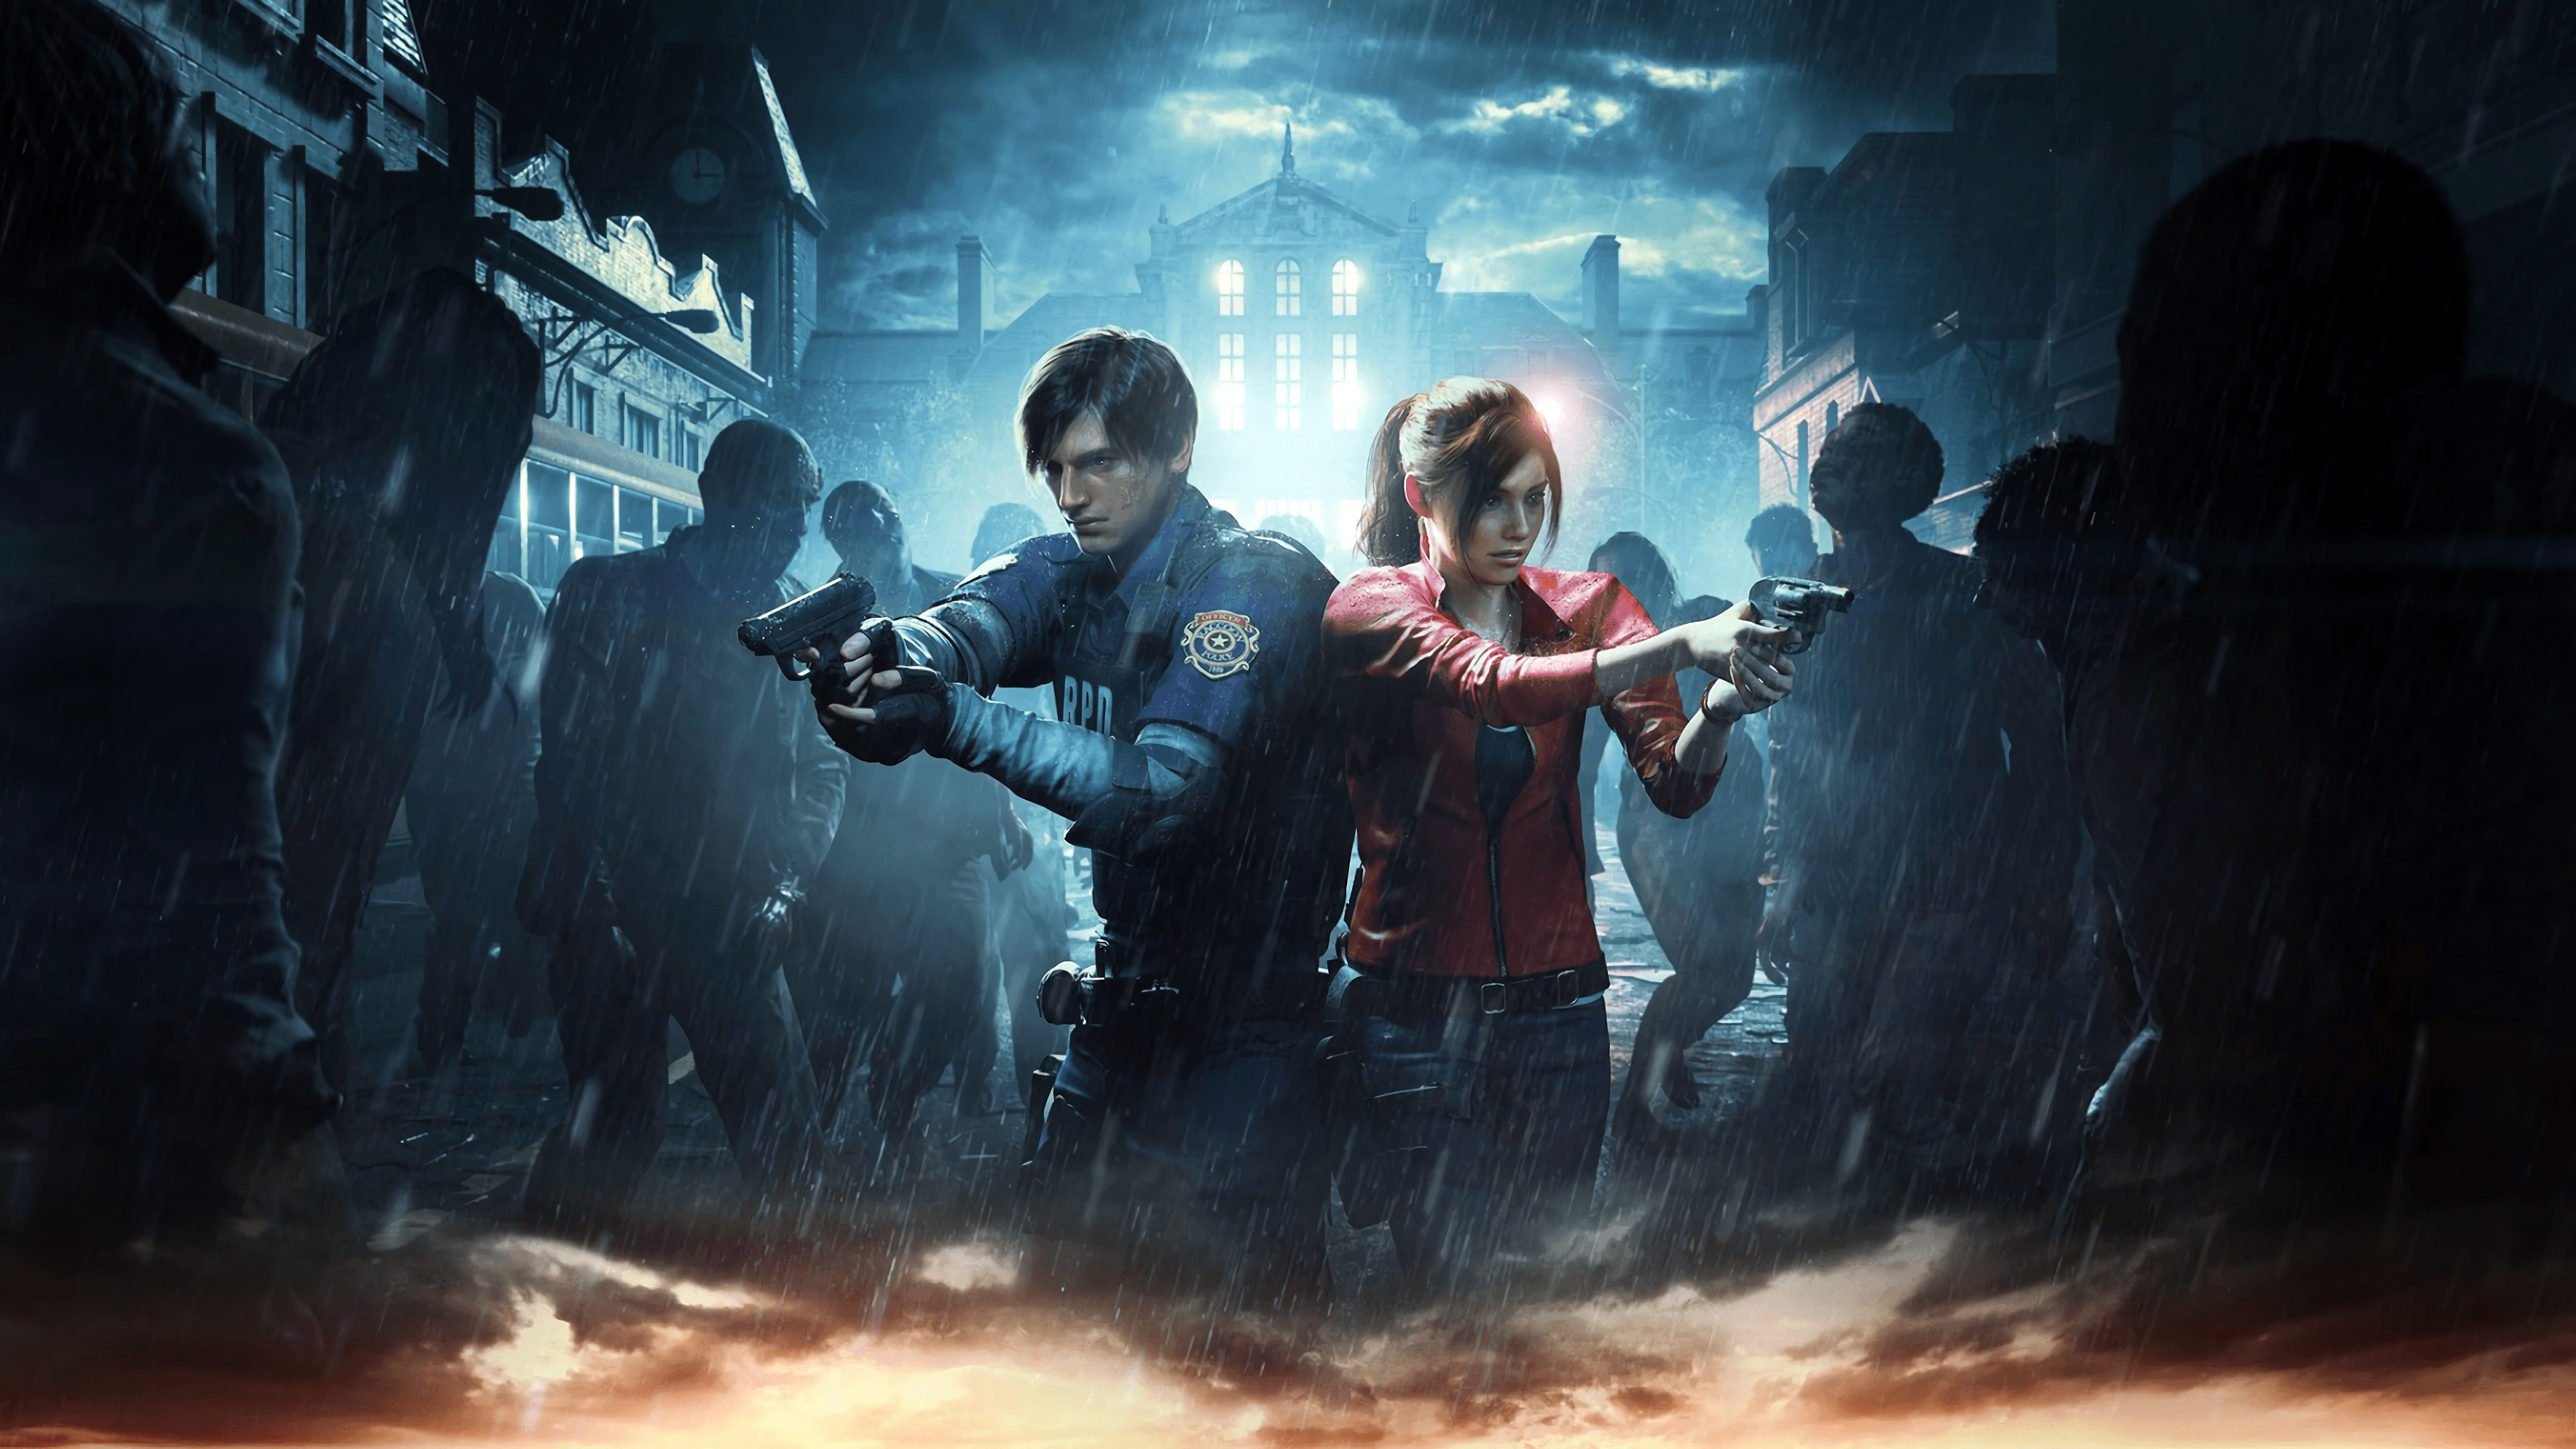 Leon S Kennedy Hd Wallpaper Resident Evil 2 2019 Leon Amp Claire Surrounded 4k Ultra